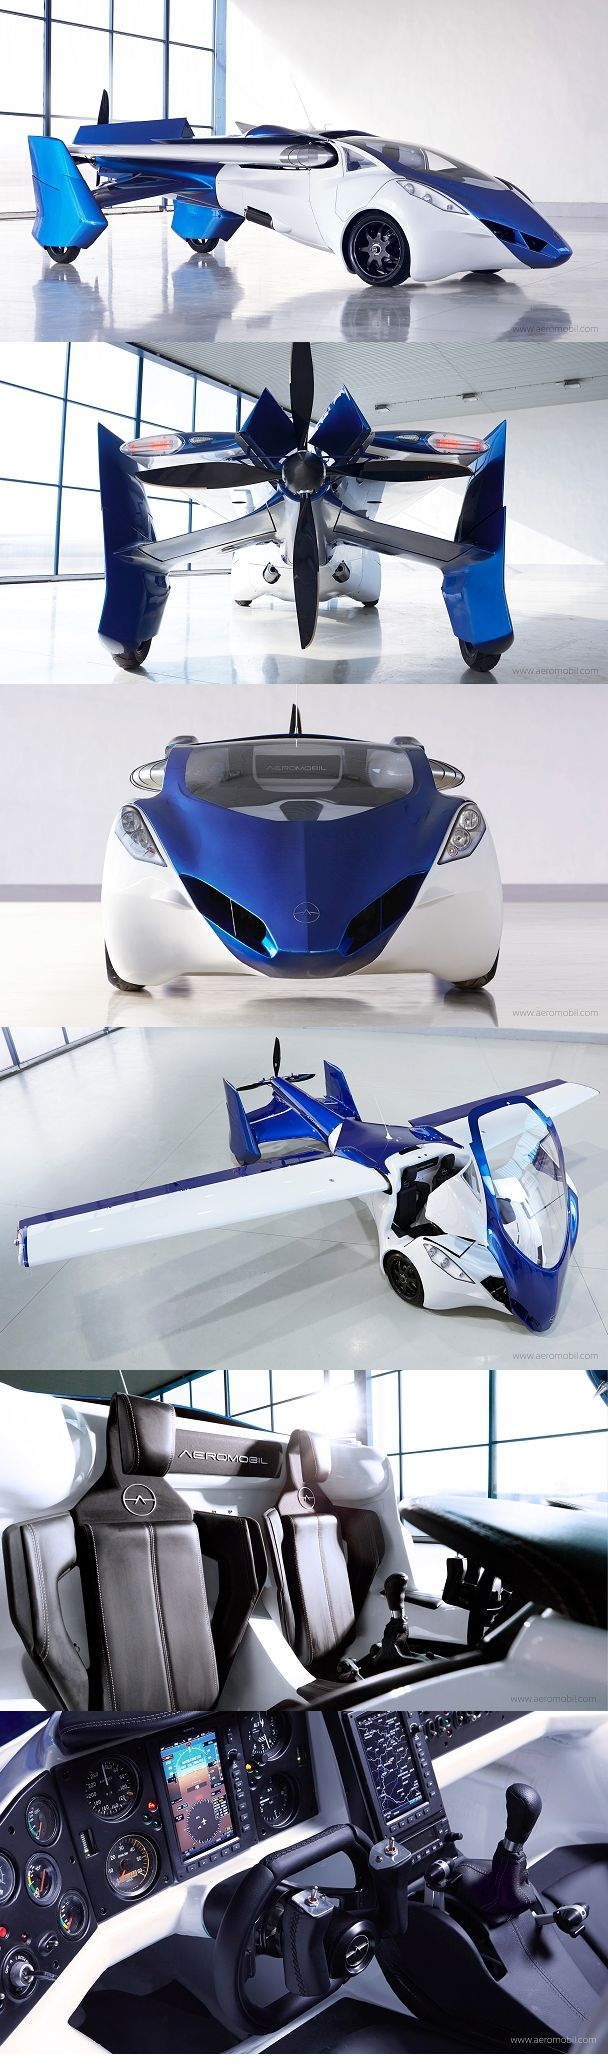 The current flying car prototype AeroMobil 3.0 incorporates significant improvements and upgrades. It is now being tested in real flight conditions since October 2014. Initially certified by the Slovak Federation of Ultra-Light Flying, it now entered a regular flight-testing program.